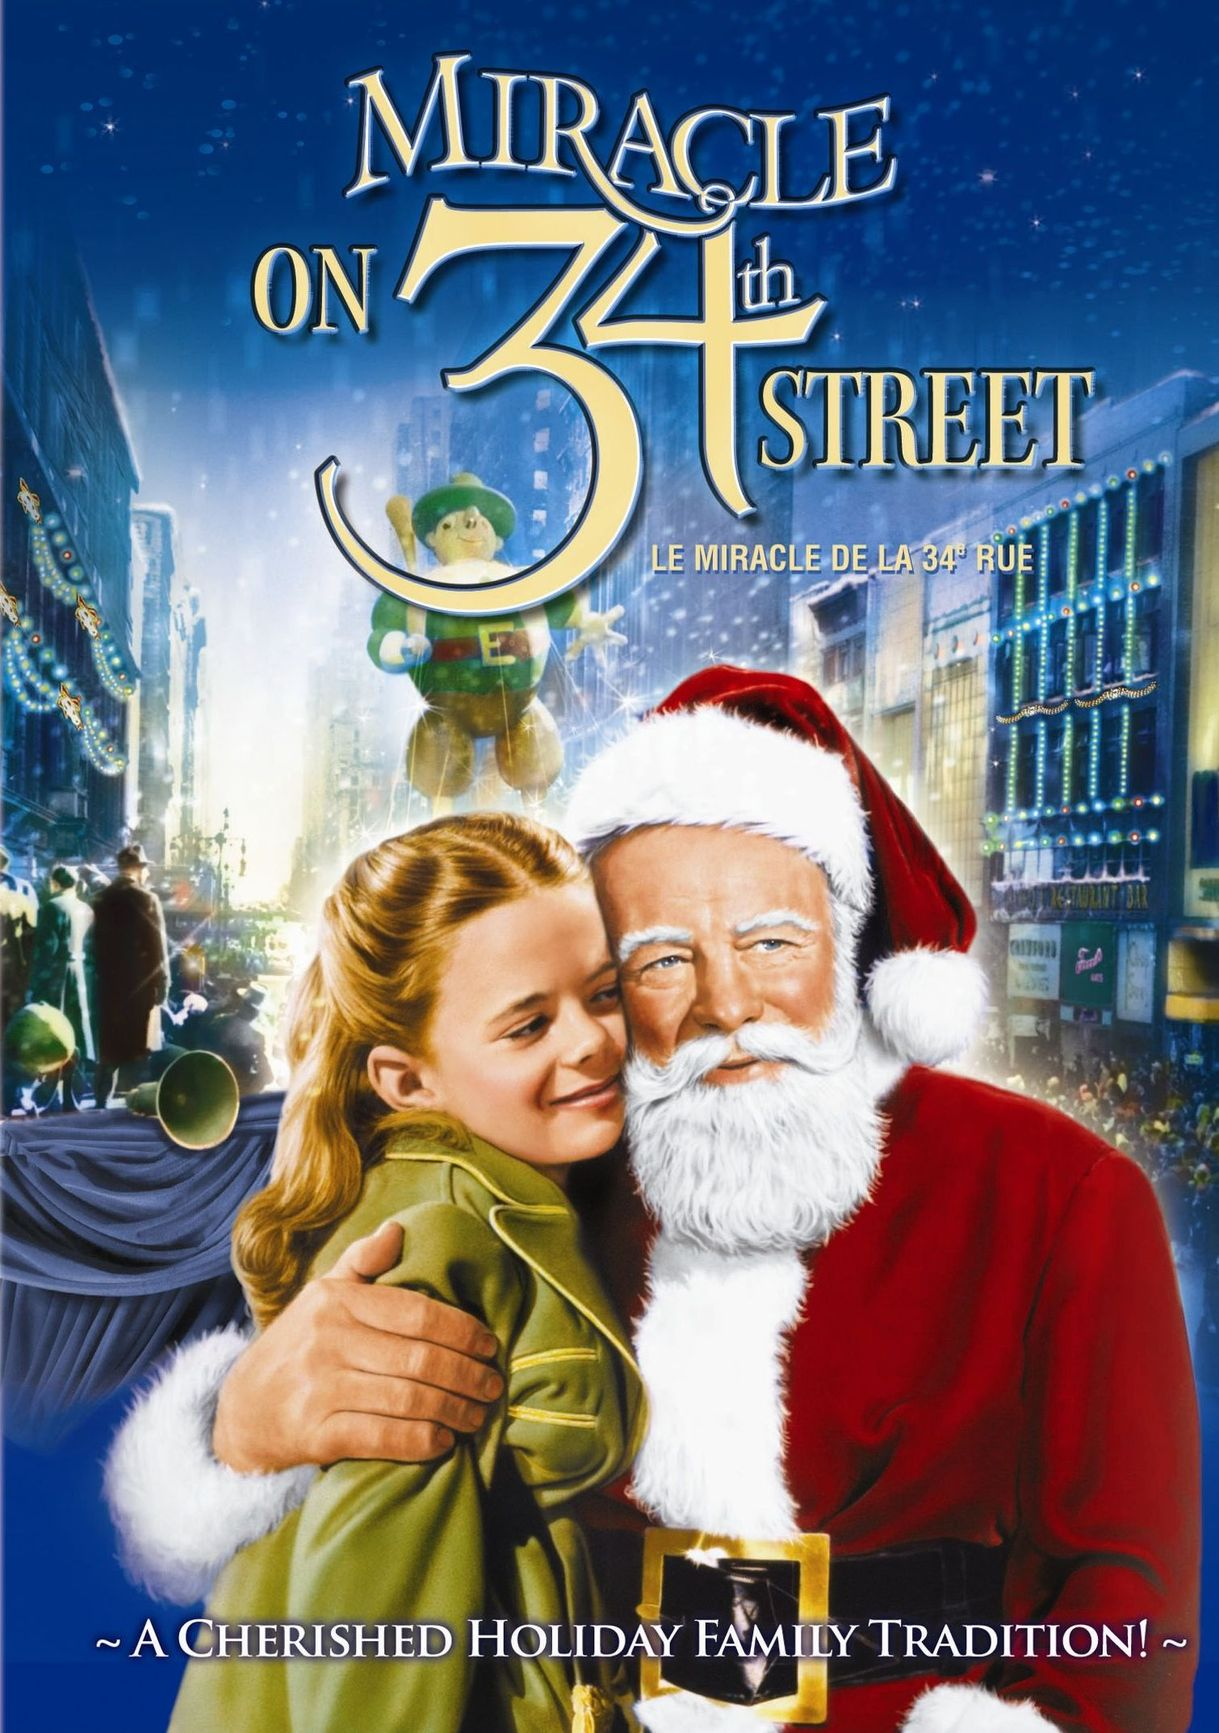 Classic Film Club: Miracle on 34th Street